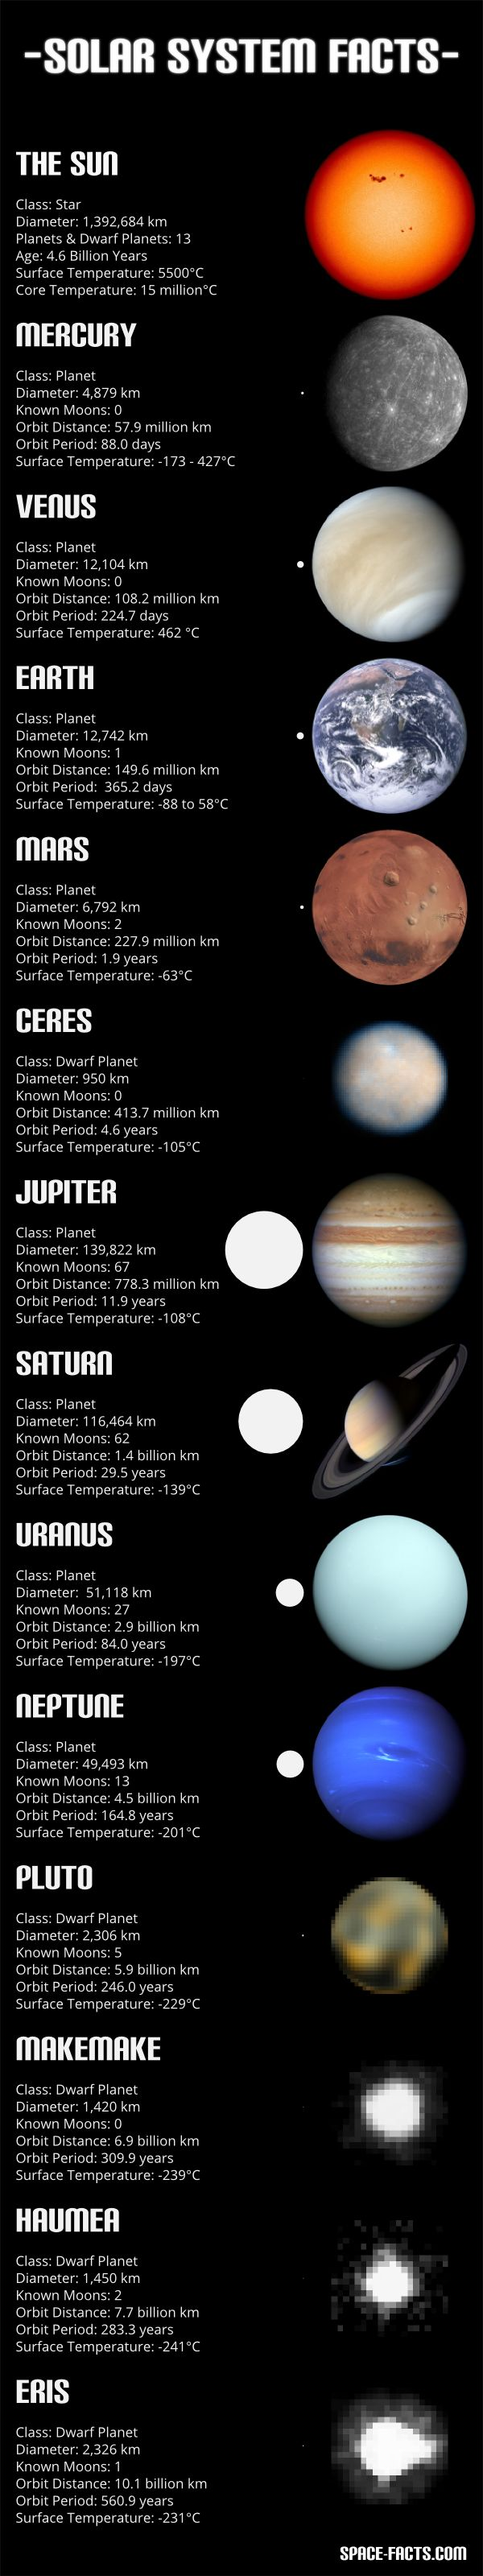 Pluto Information and Facts | National Geographic